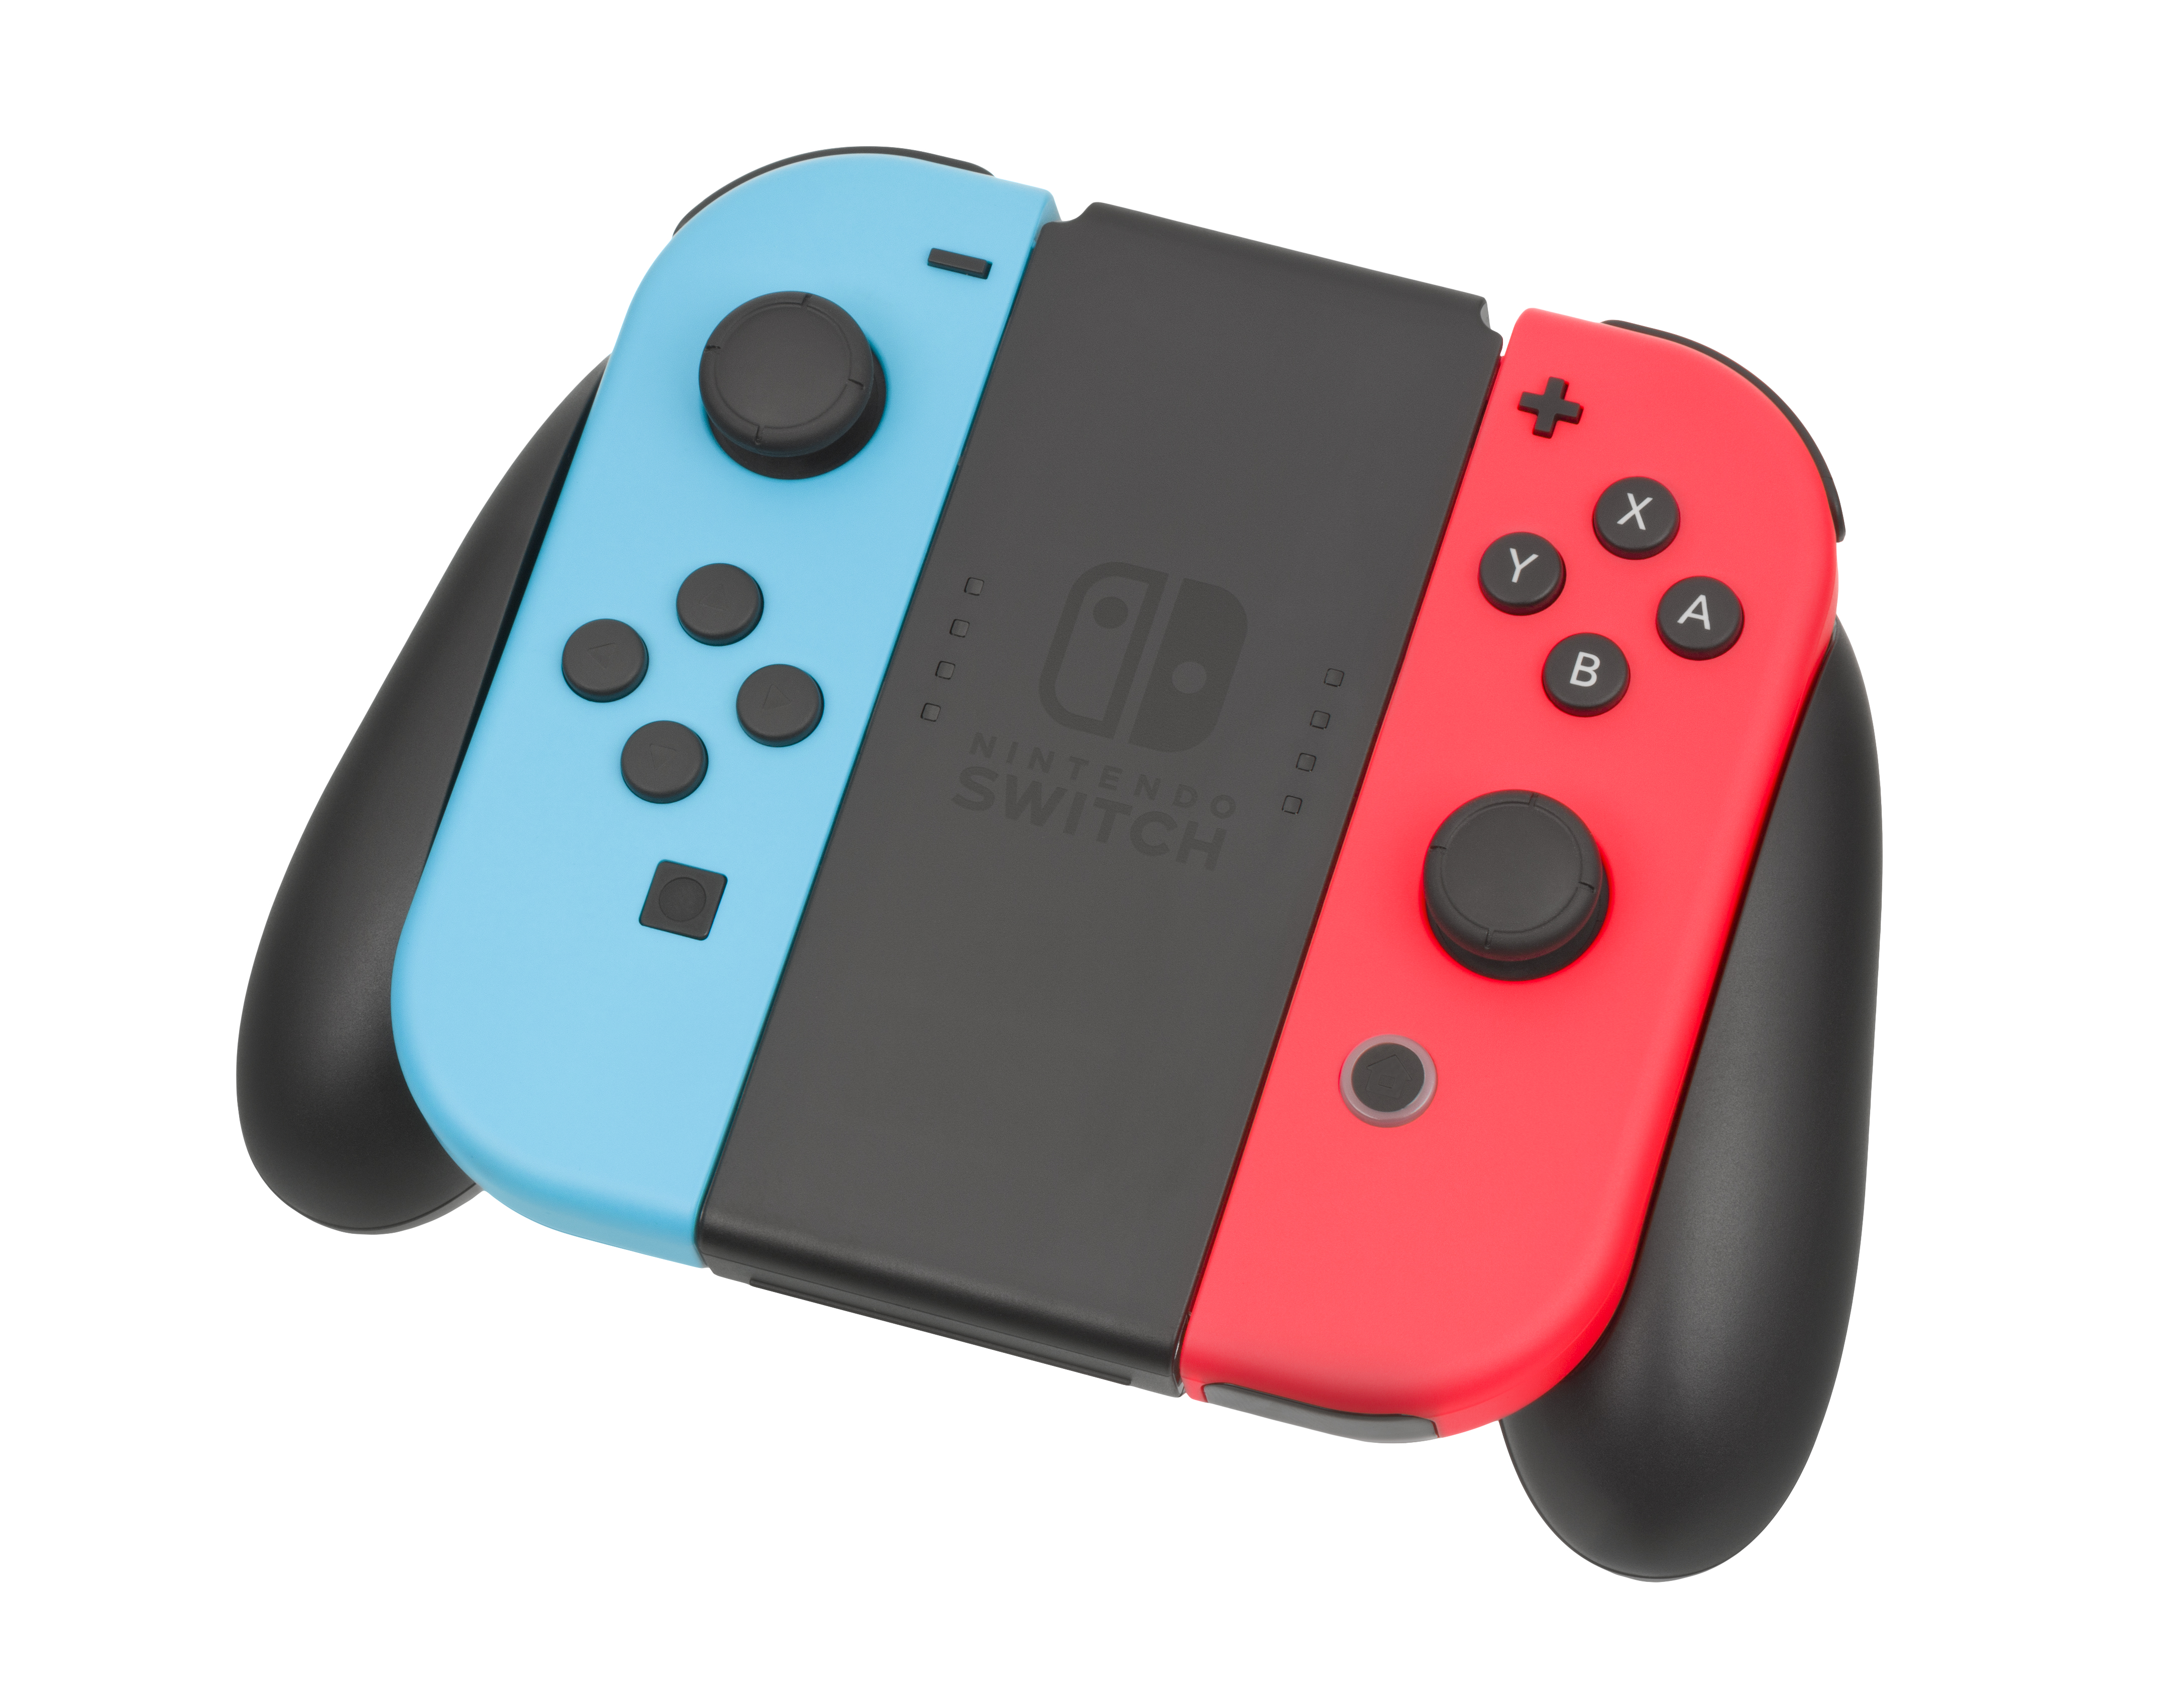 Nintendo Switch Wikipedia By A Pull Chain Or In Some Newer Fans Wireless Remote The Neon Red And Blue Joy Con Attached To Grip Controller Comes With